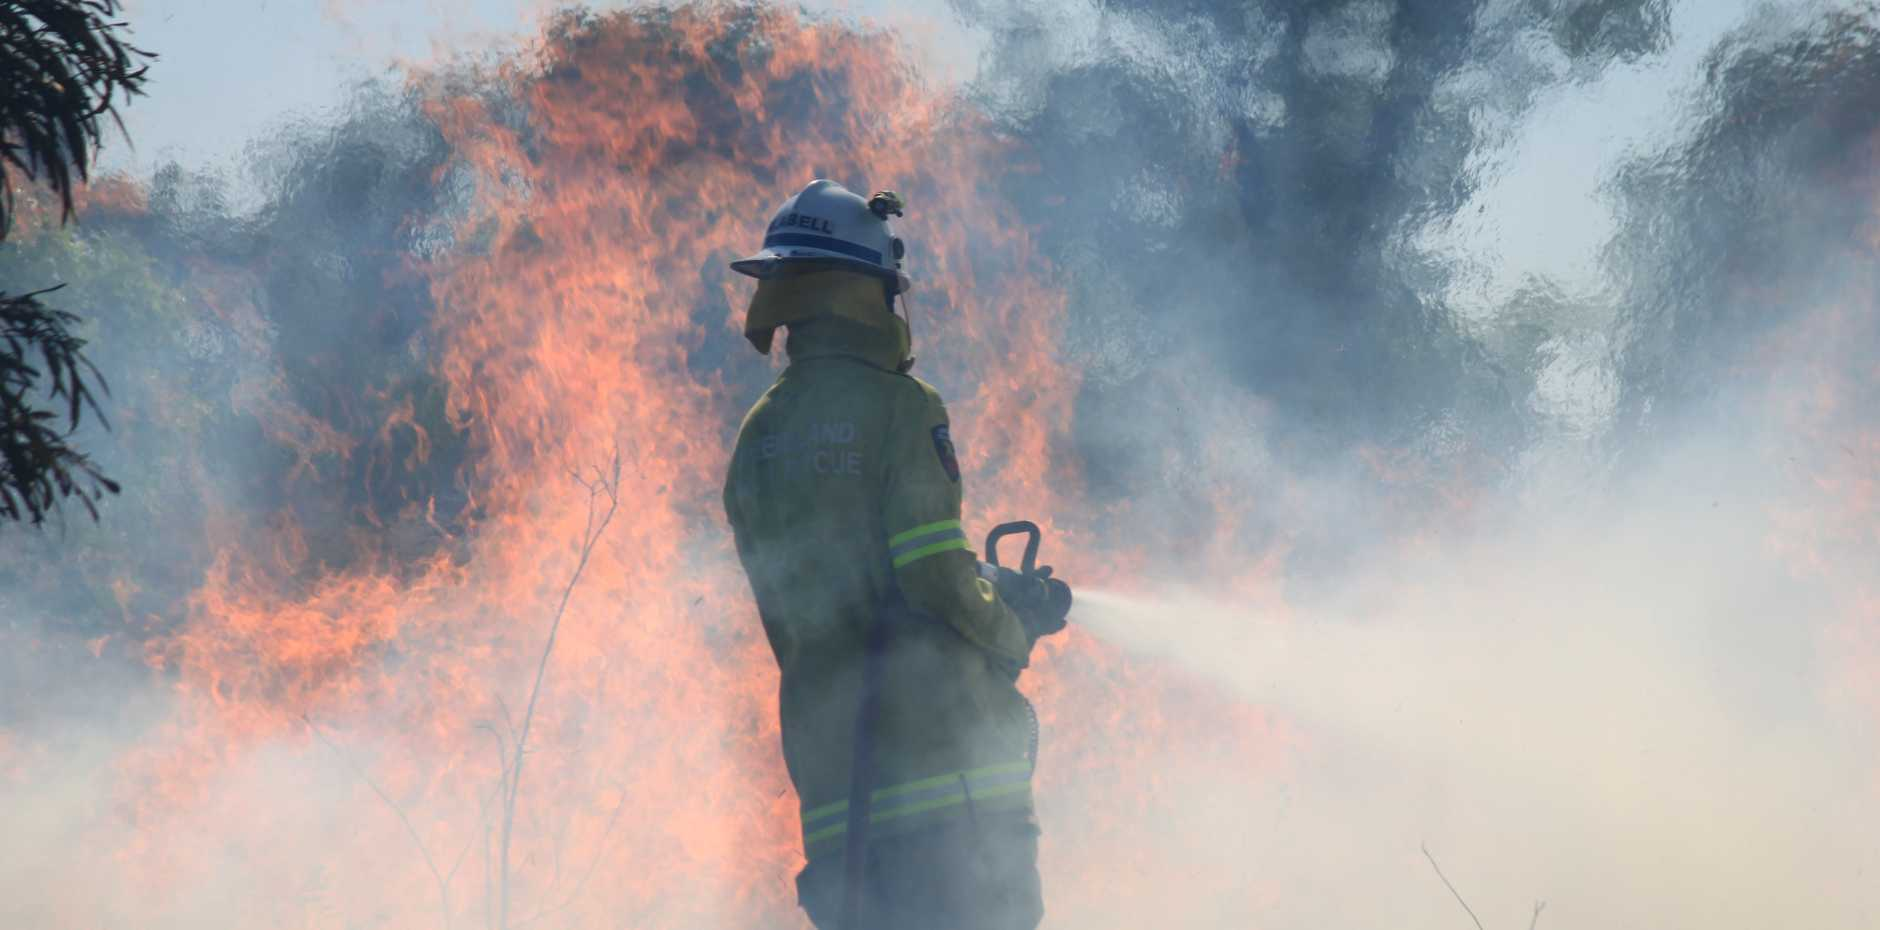 TAKE CARE: A high fire danger warning has been issued for the Central Highlands.